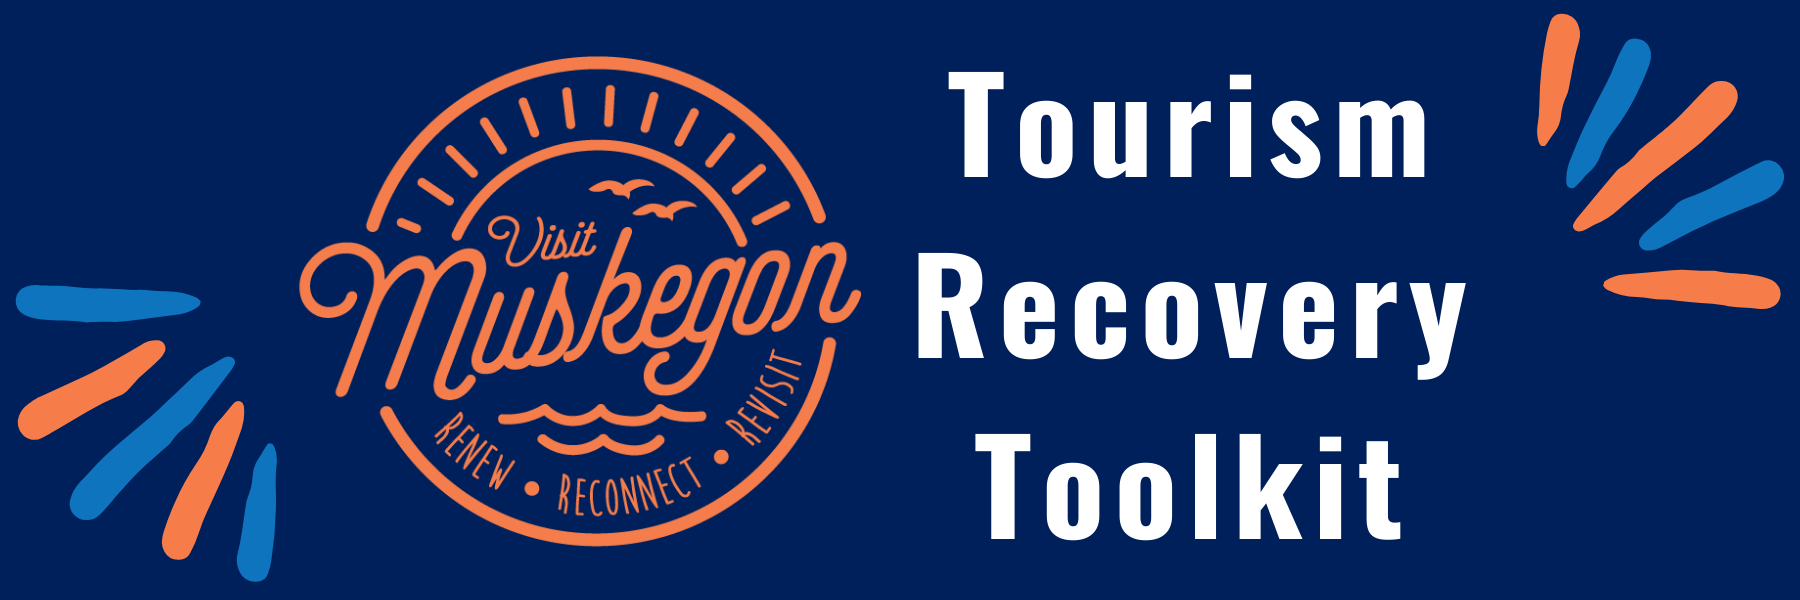 Tourism Recovery Toolkit